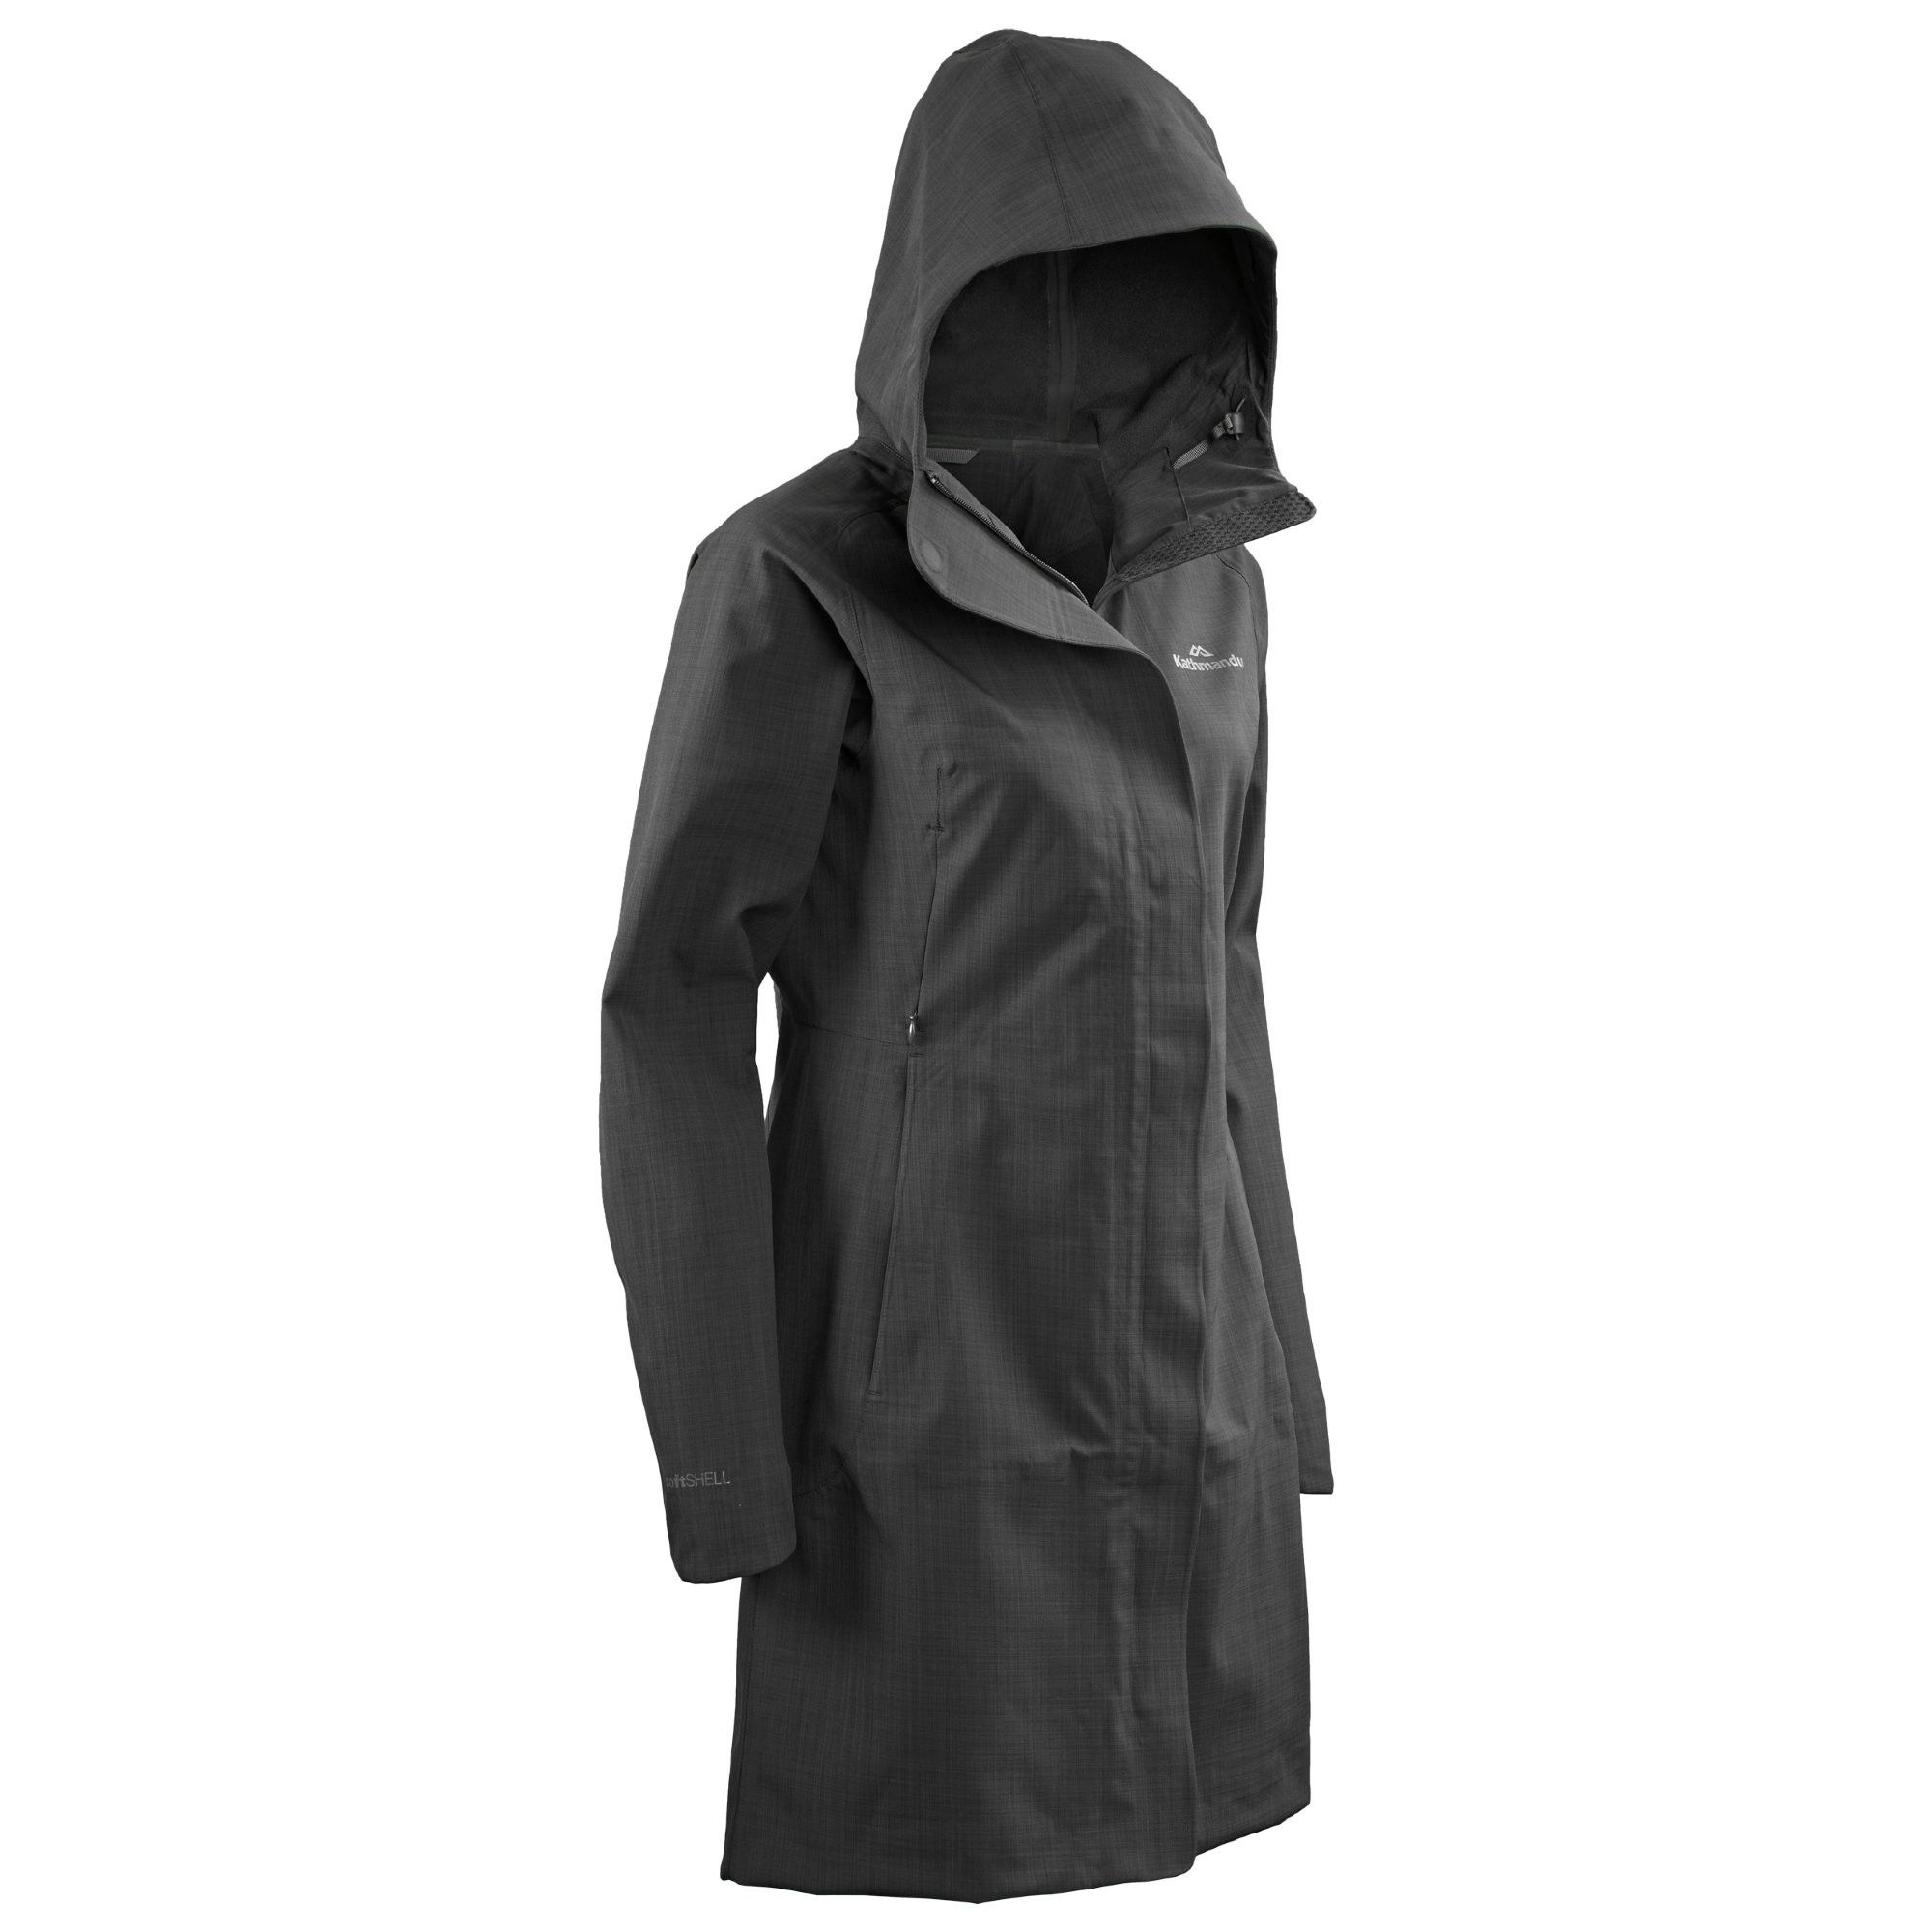 Buy Piedra Women's Longer Length Hooded Waterproof Coat - Black ...